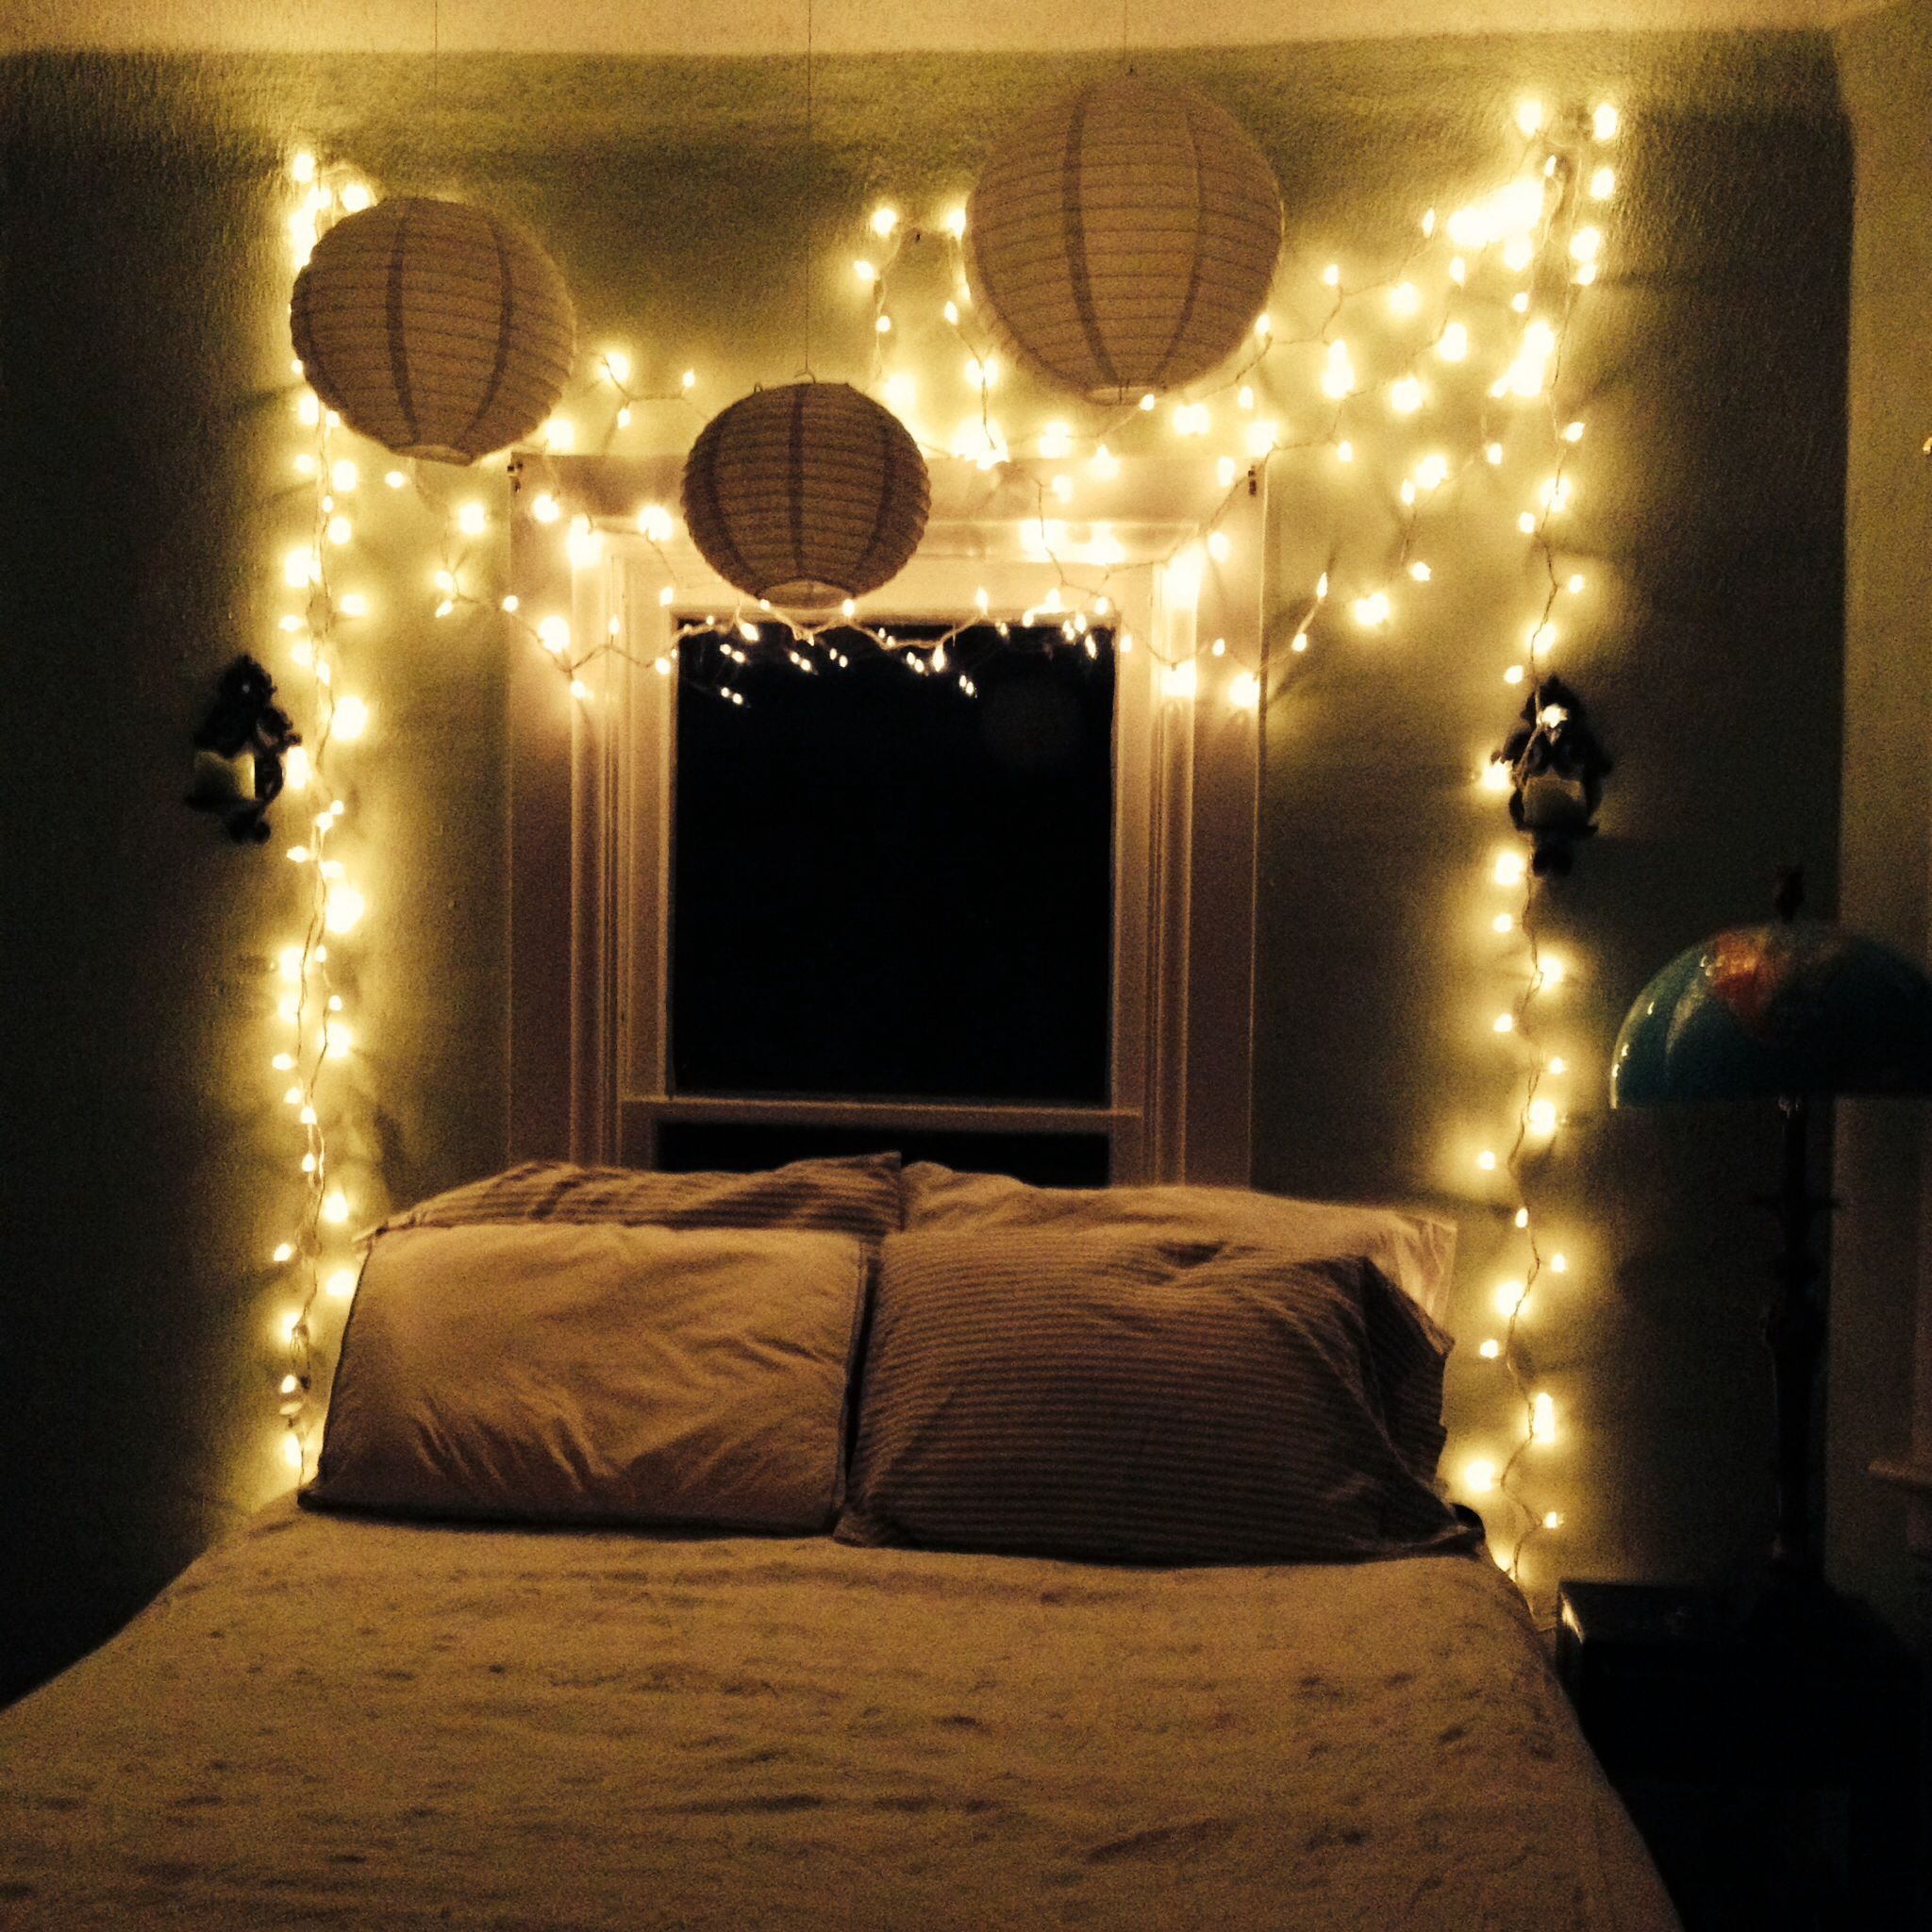 My Bedroom Oasis: Twinkle Lights, White, And Stripes